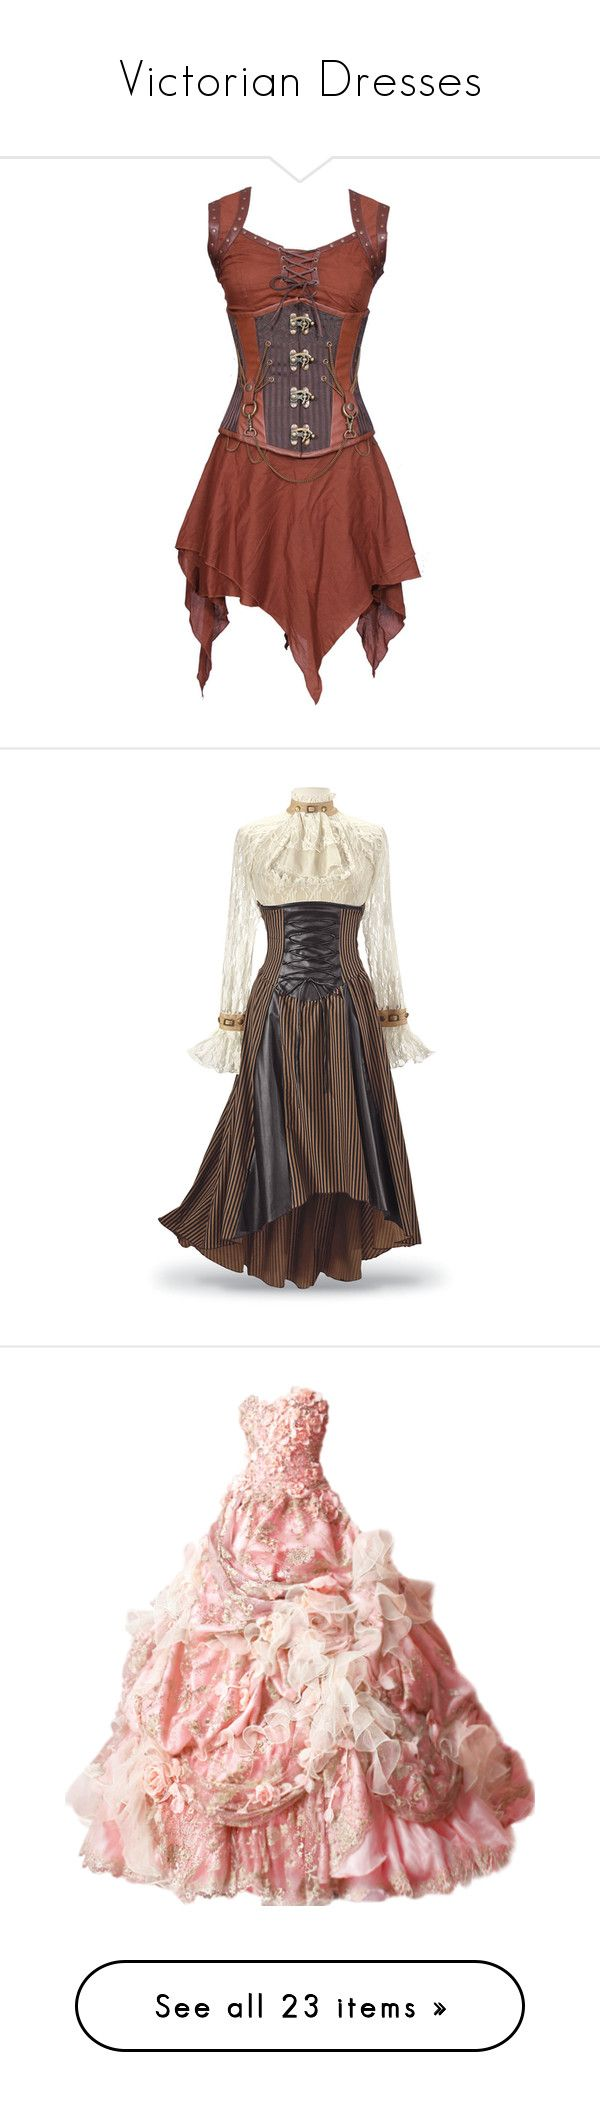 """Victorian Dresses"" by emilybrackeen ❤ liked on Polyvore featuring dresses, steampunk, corsets, short dresses, short corset, brown cocktail dress, mini dress, long cocktail dresses, steampunk corset dress and historical"